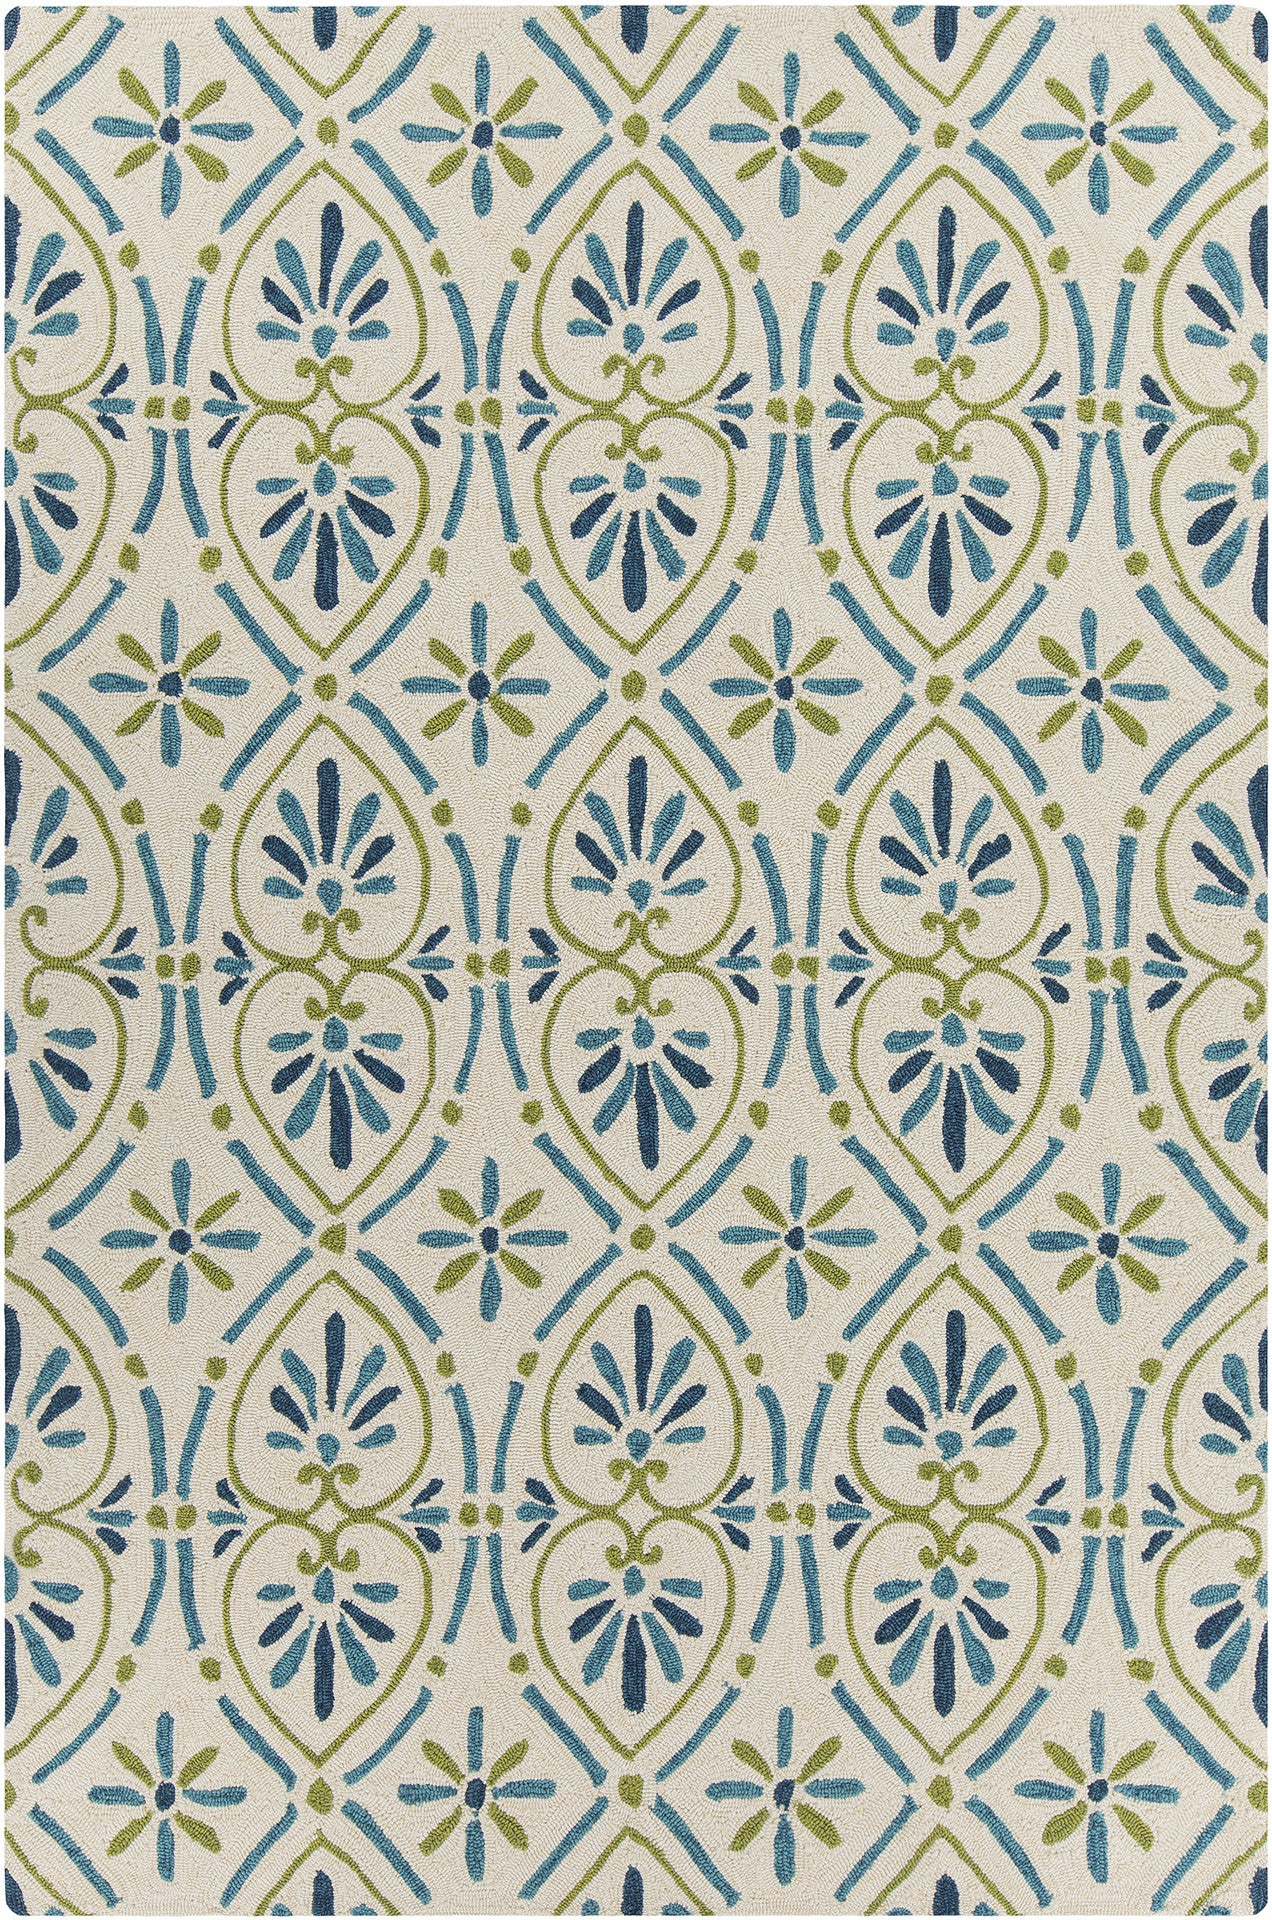 Terra Collection Hand Tufted Area Rug In Cream, Blue, U0026 Green Design By  Chandra Rugs